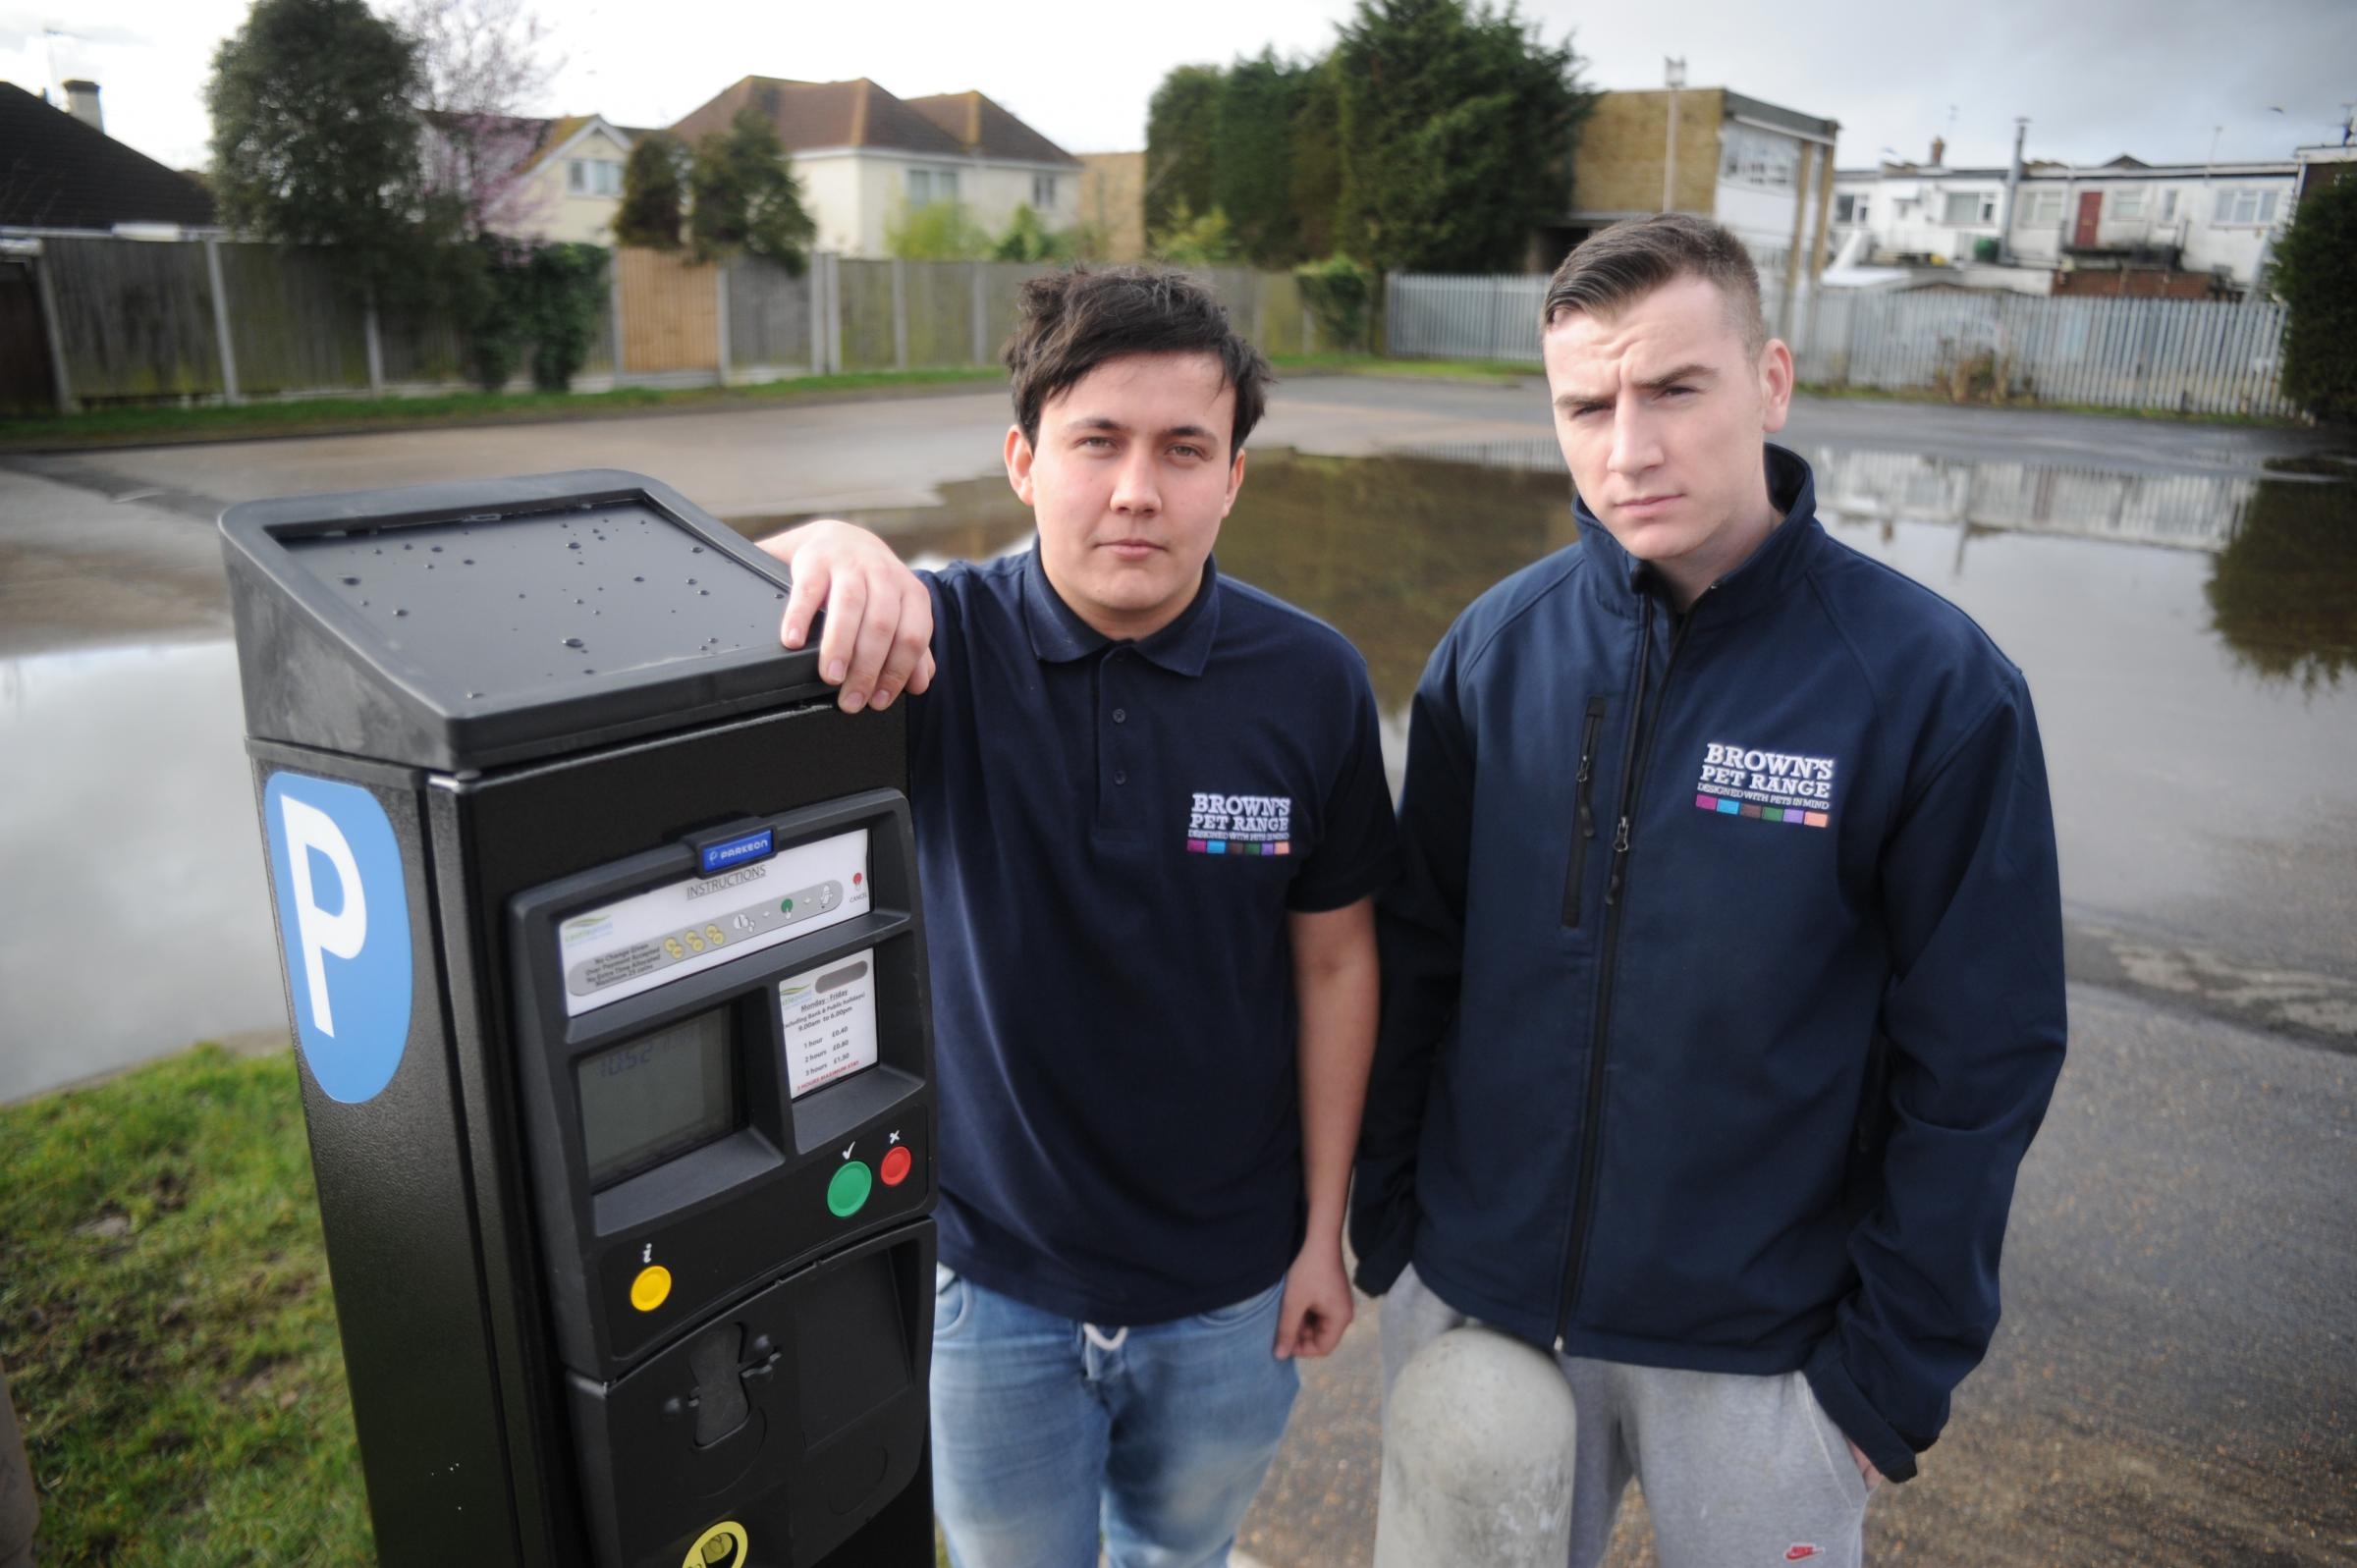 David Rayne and Ben Brown of the Discount Pet Superstore on Canvey, angry at the new parking charges